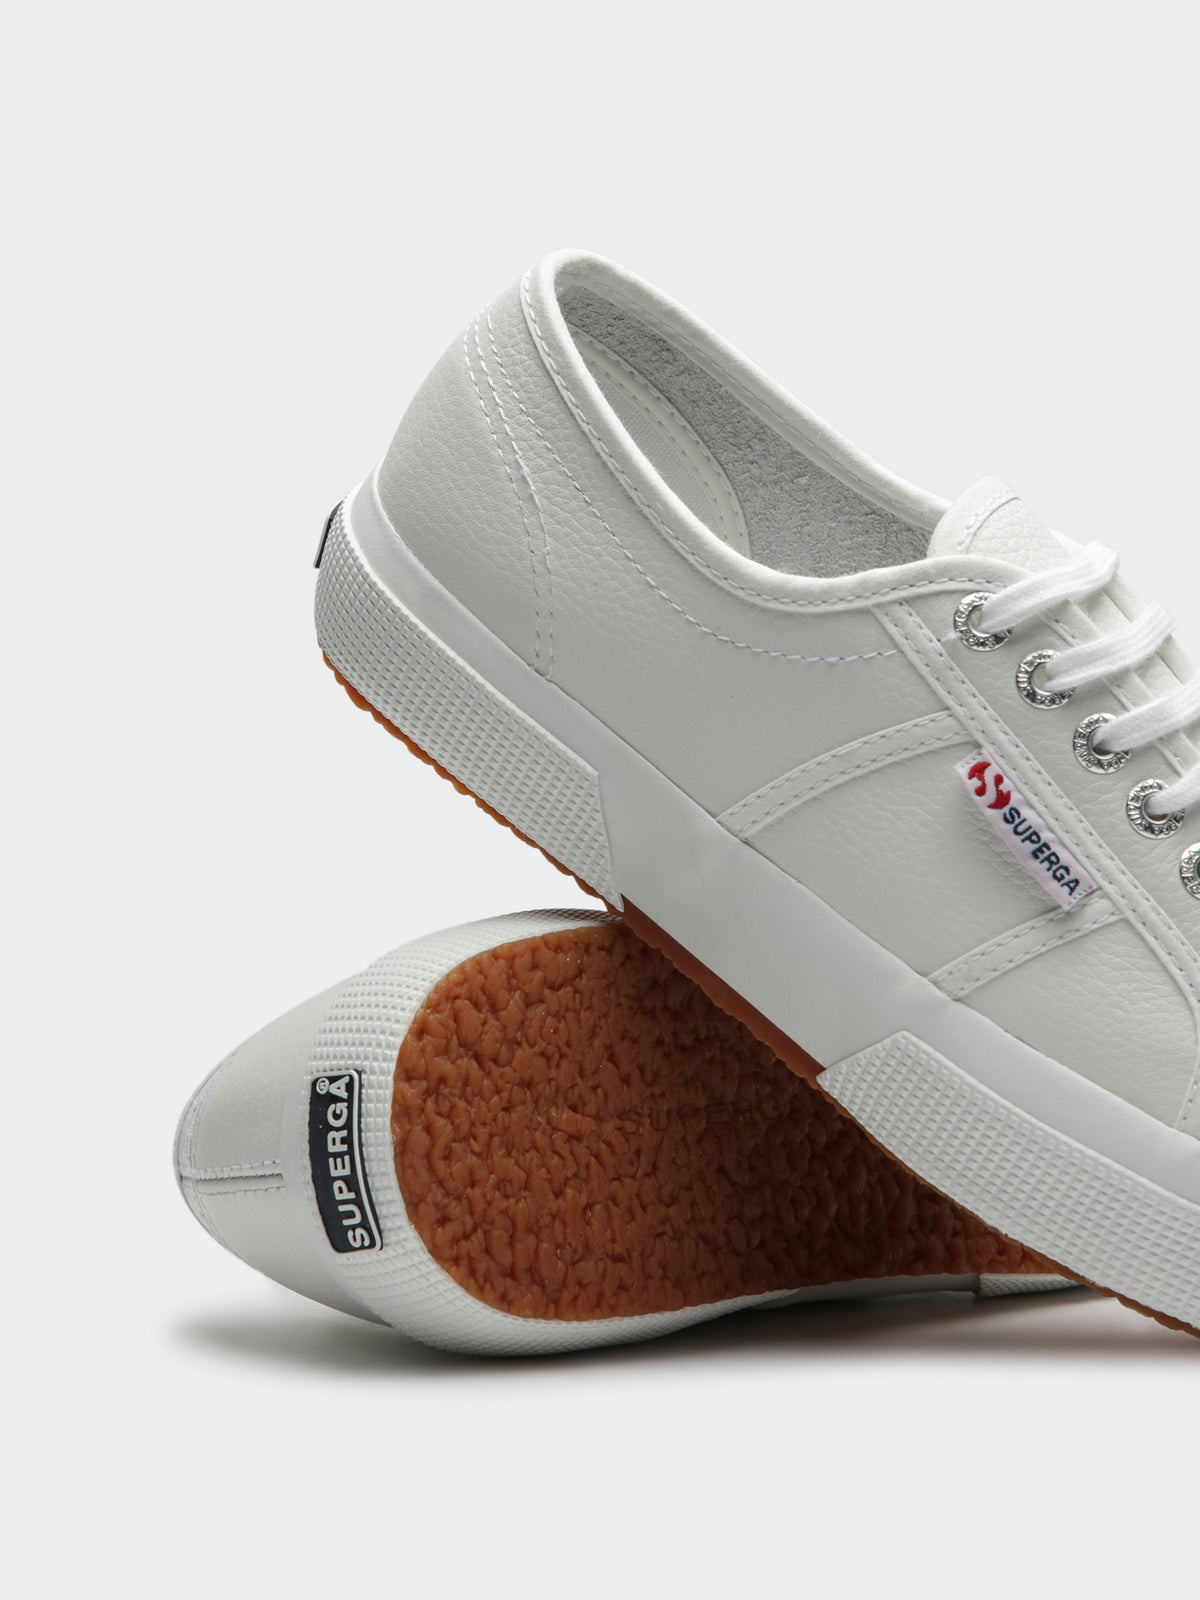 Unisex 2750 Cotu Classic Sneakers in White Leather